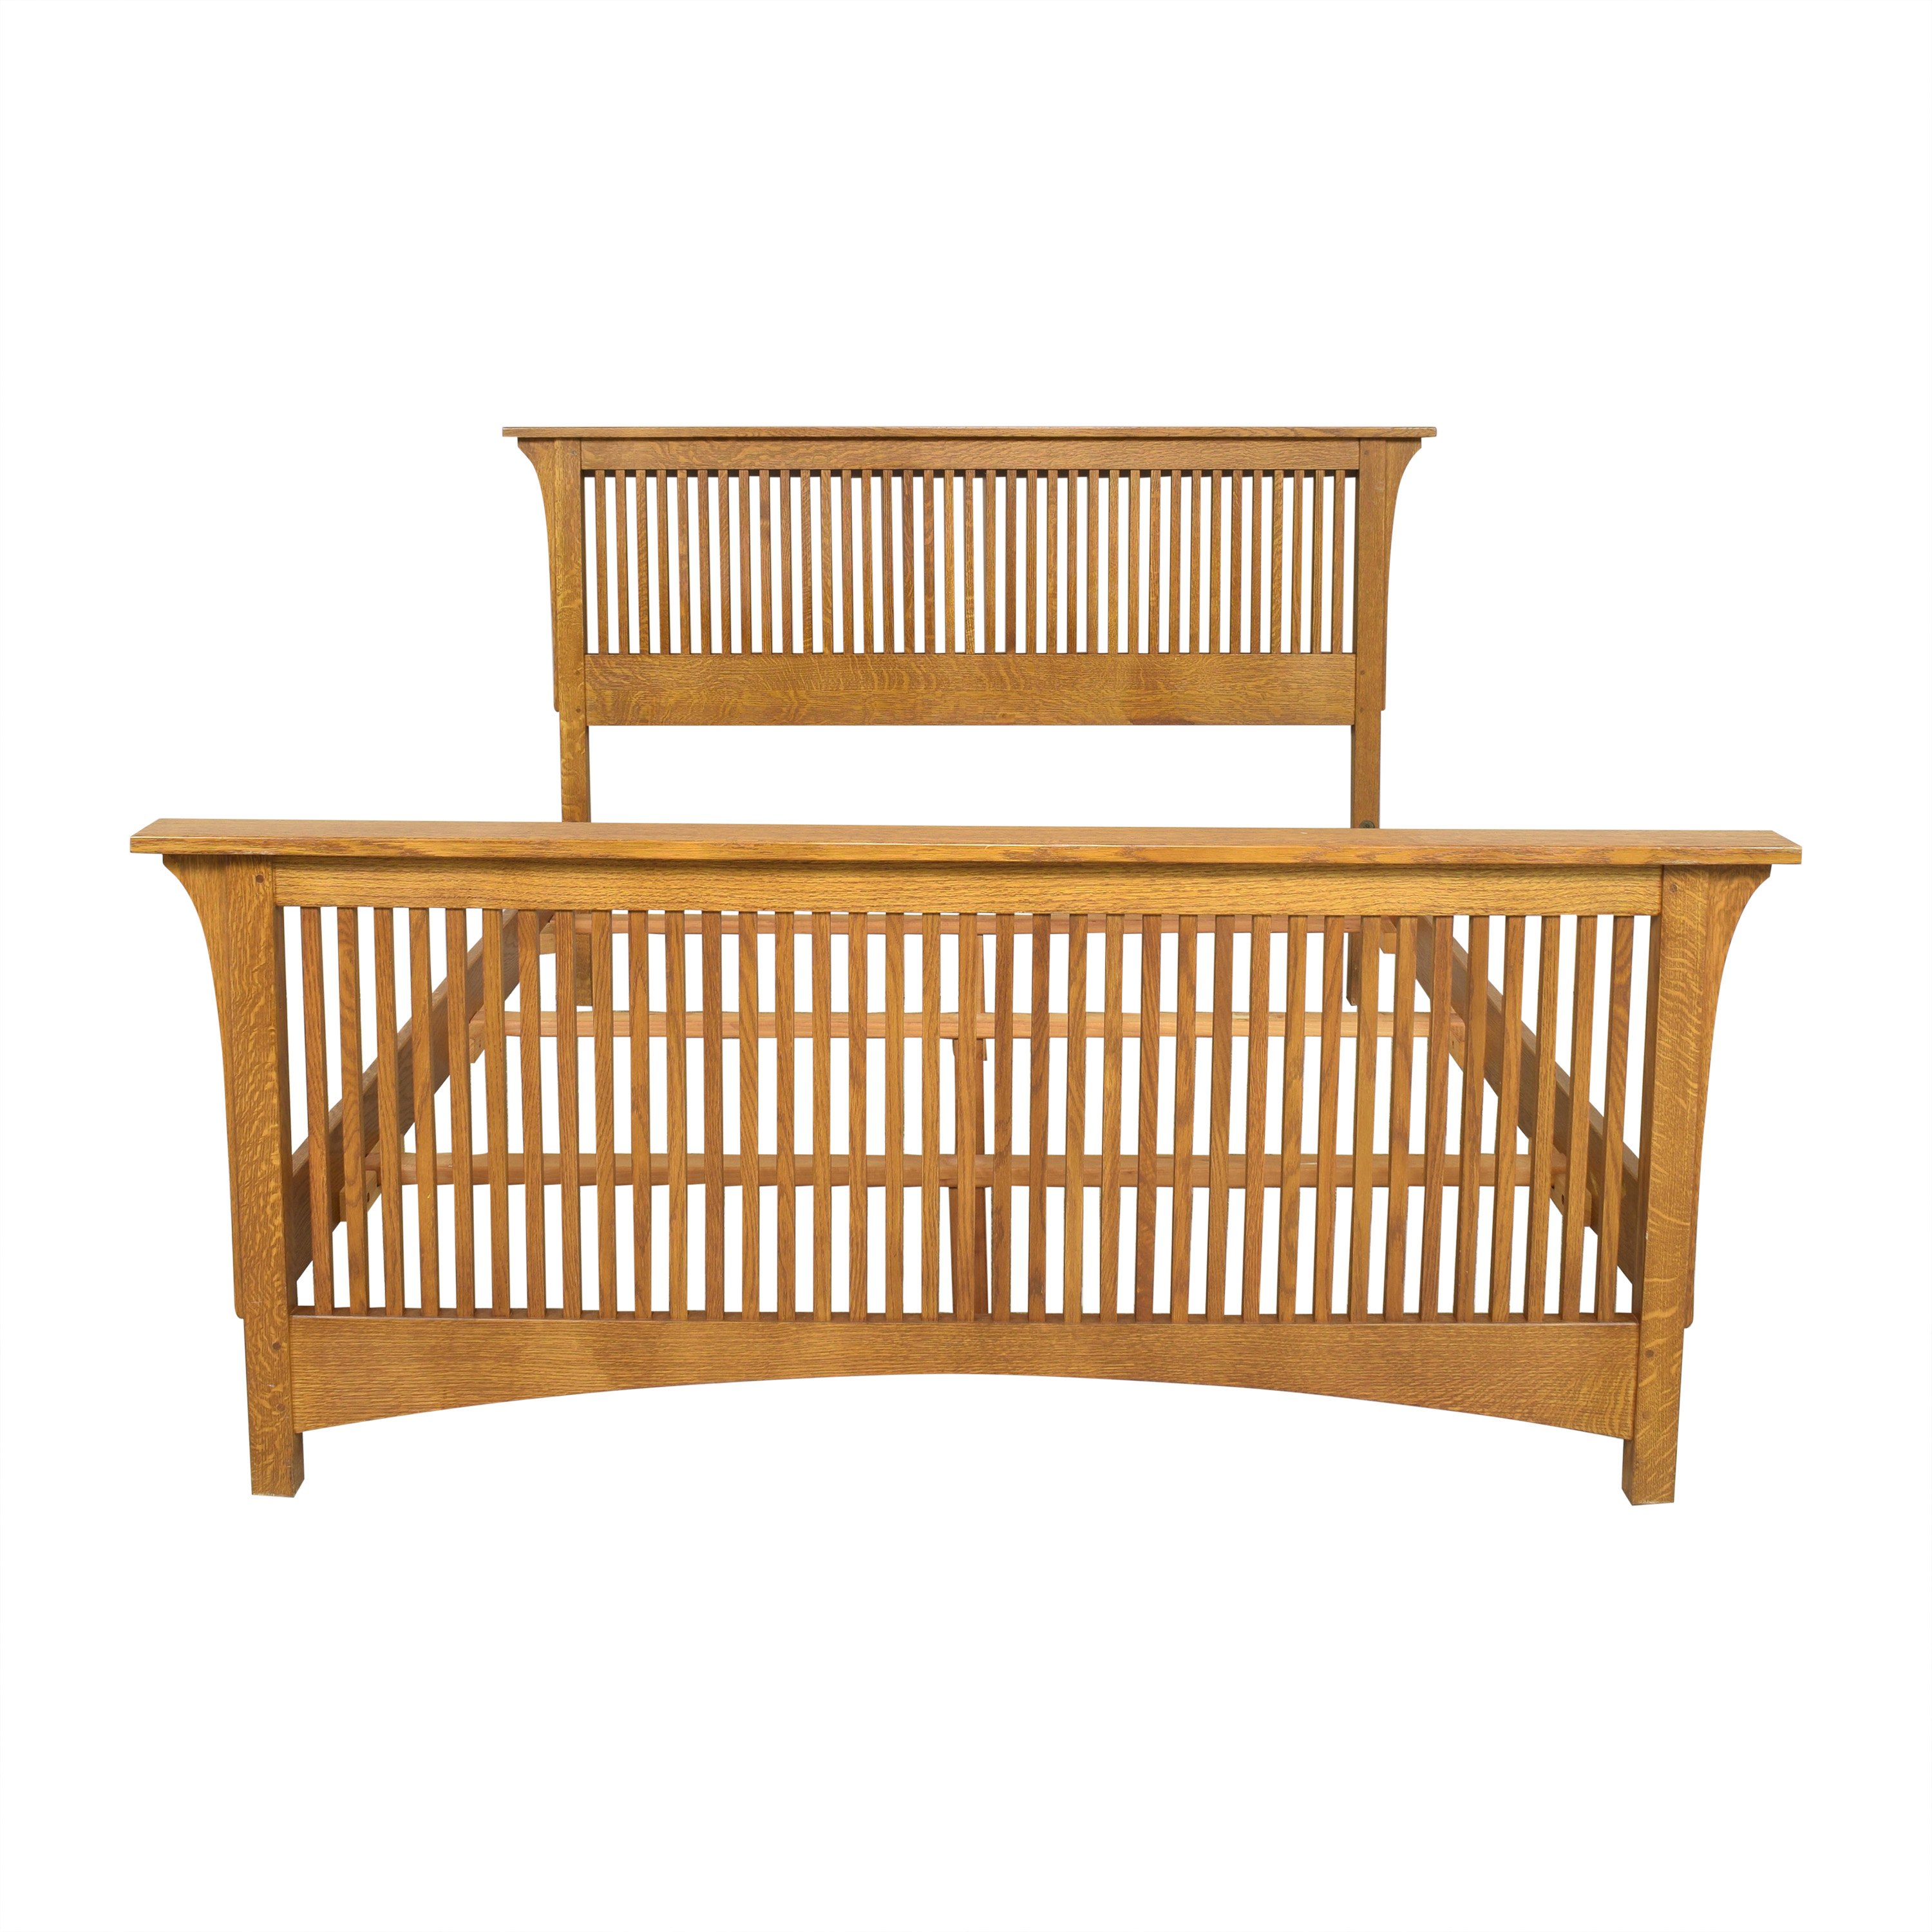 Stickley Furniture Stickley Furniture Mission Collection Queen Spindle Bed nyc